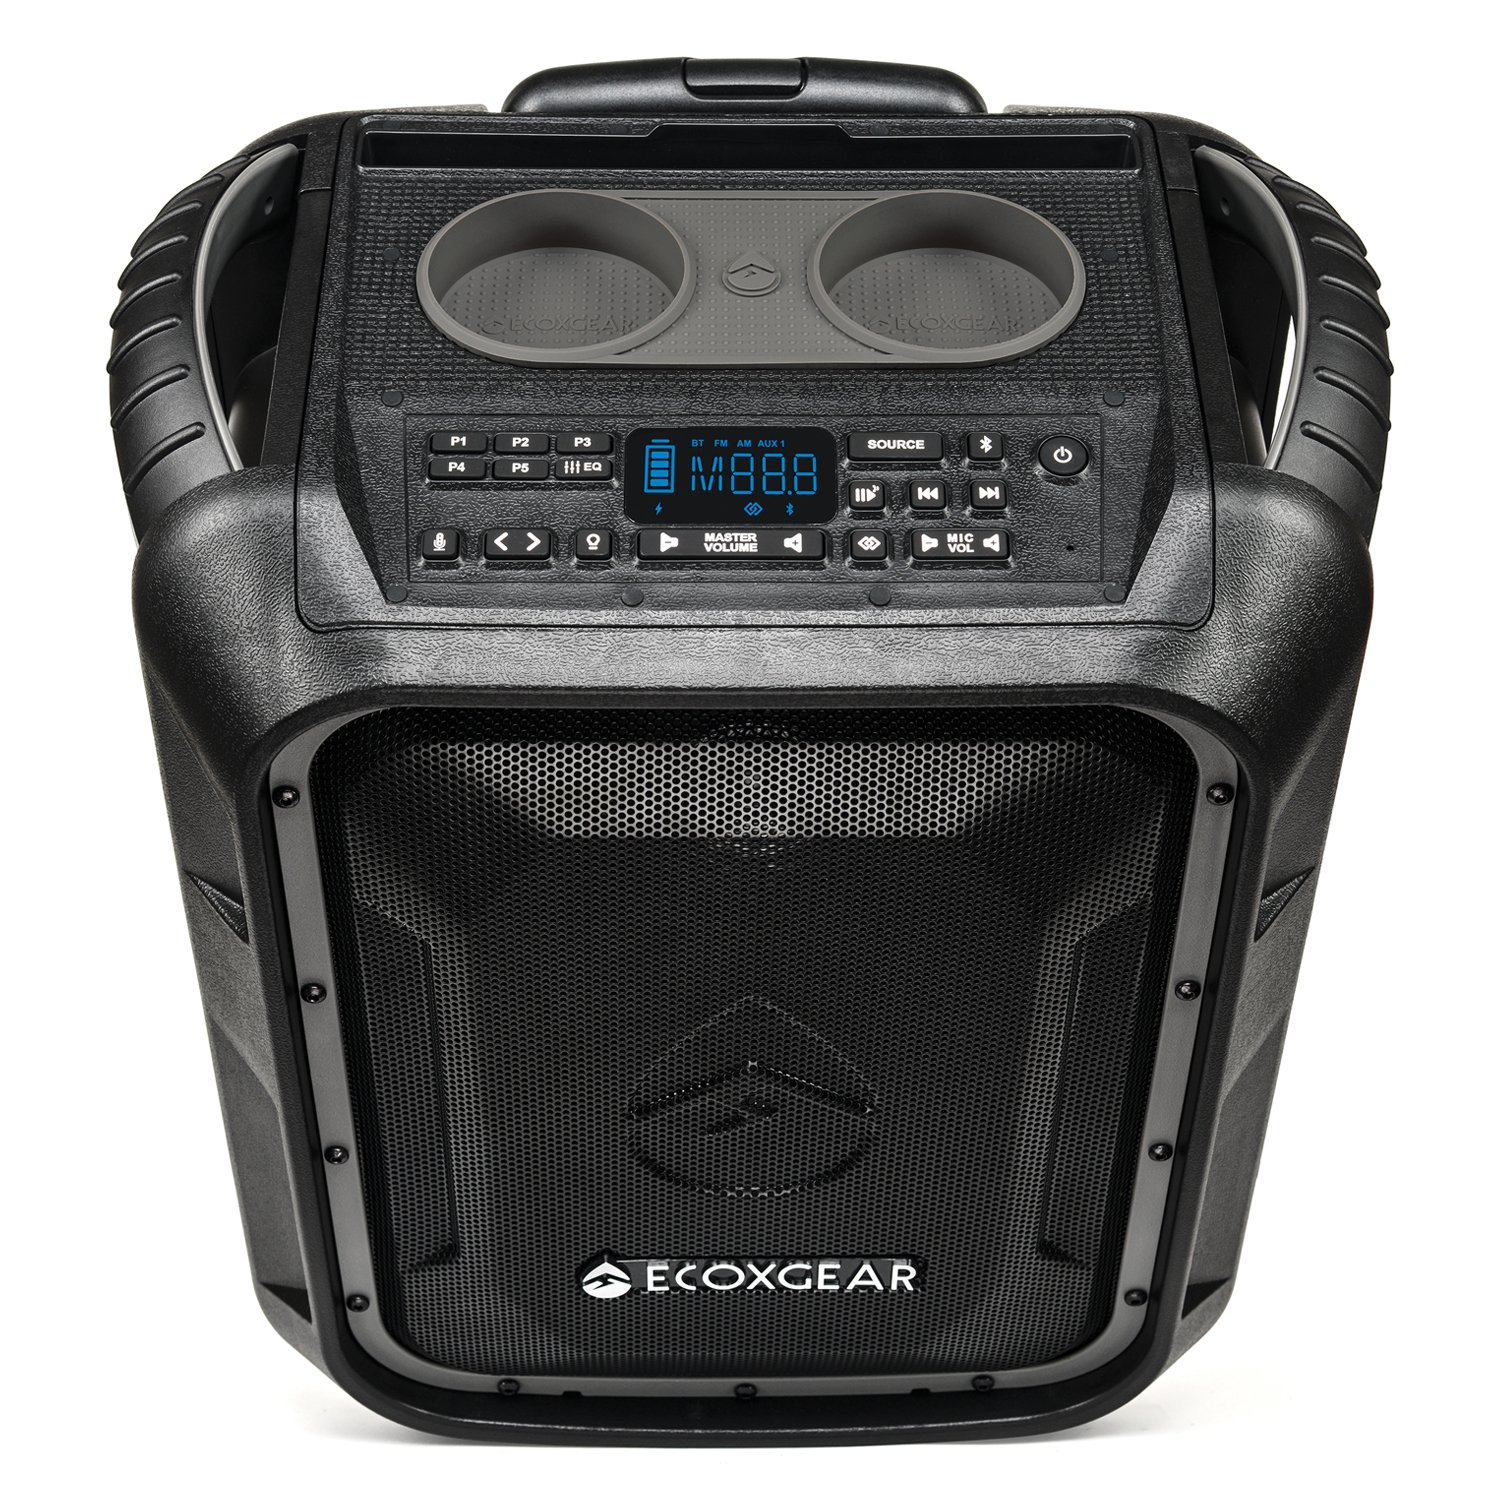 ECOXGEAR GDI-EXBLD810 Waterproof Portable Bluetooth/AM/FM...